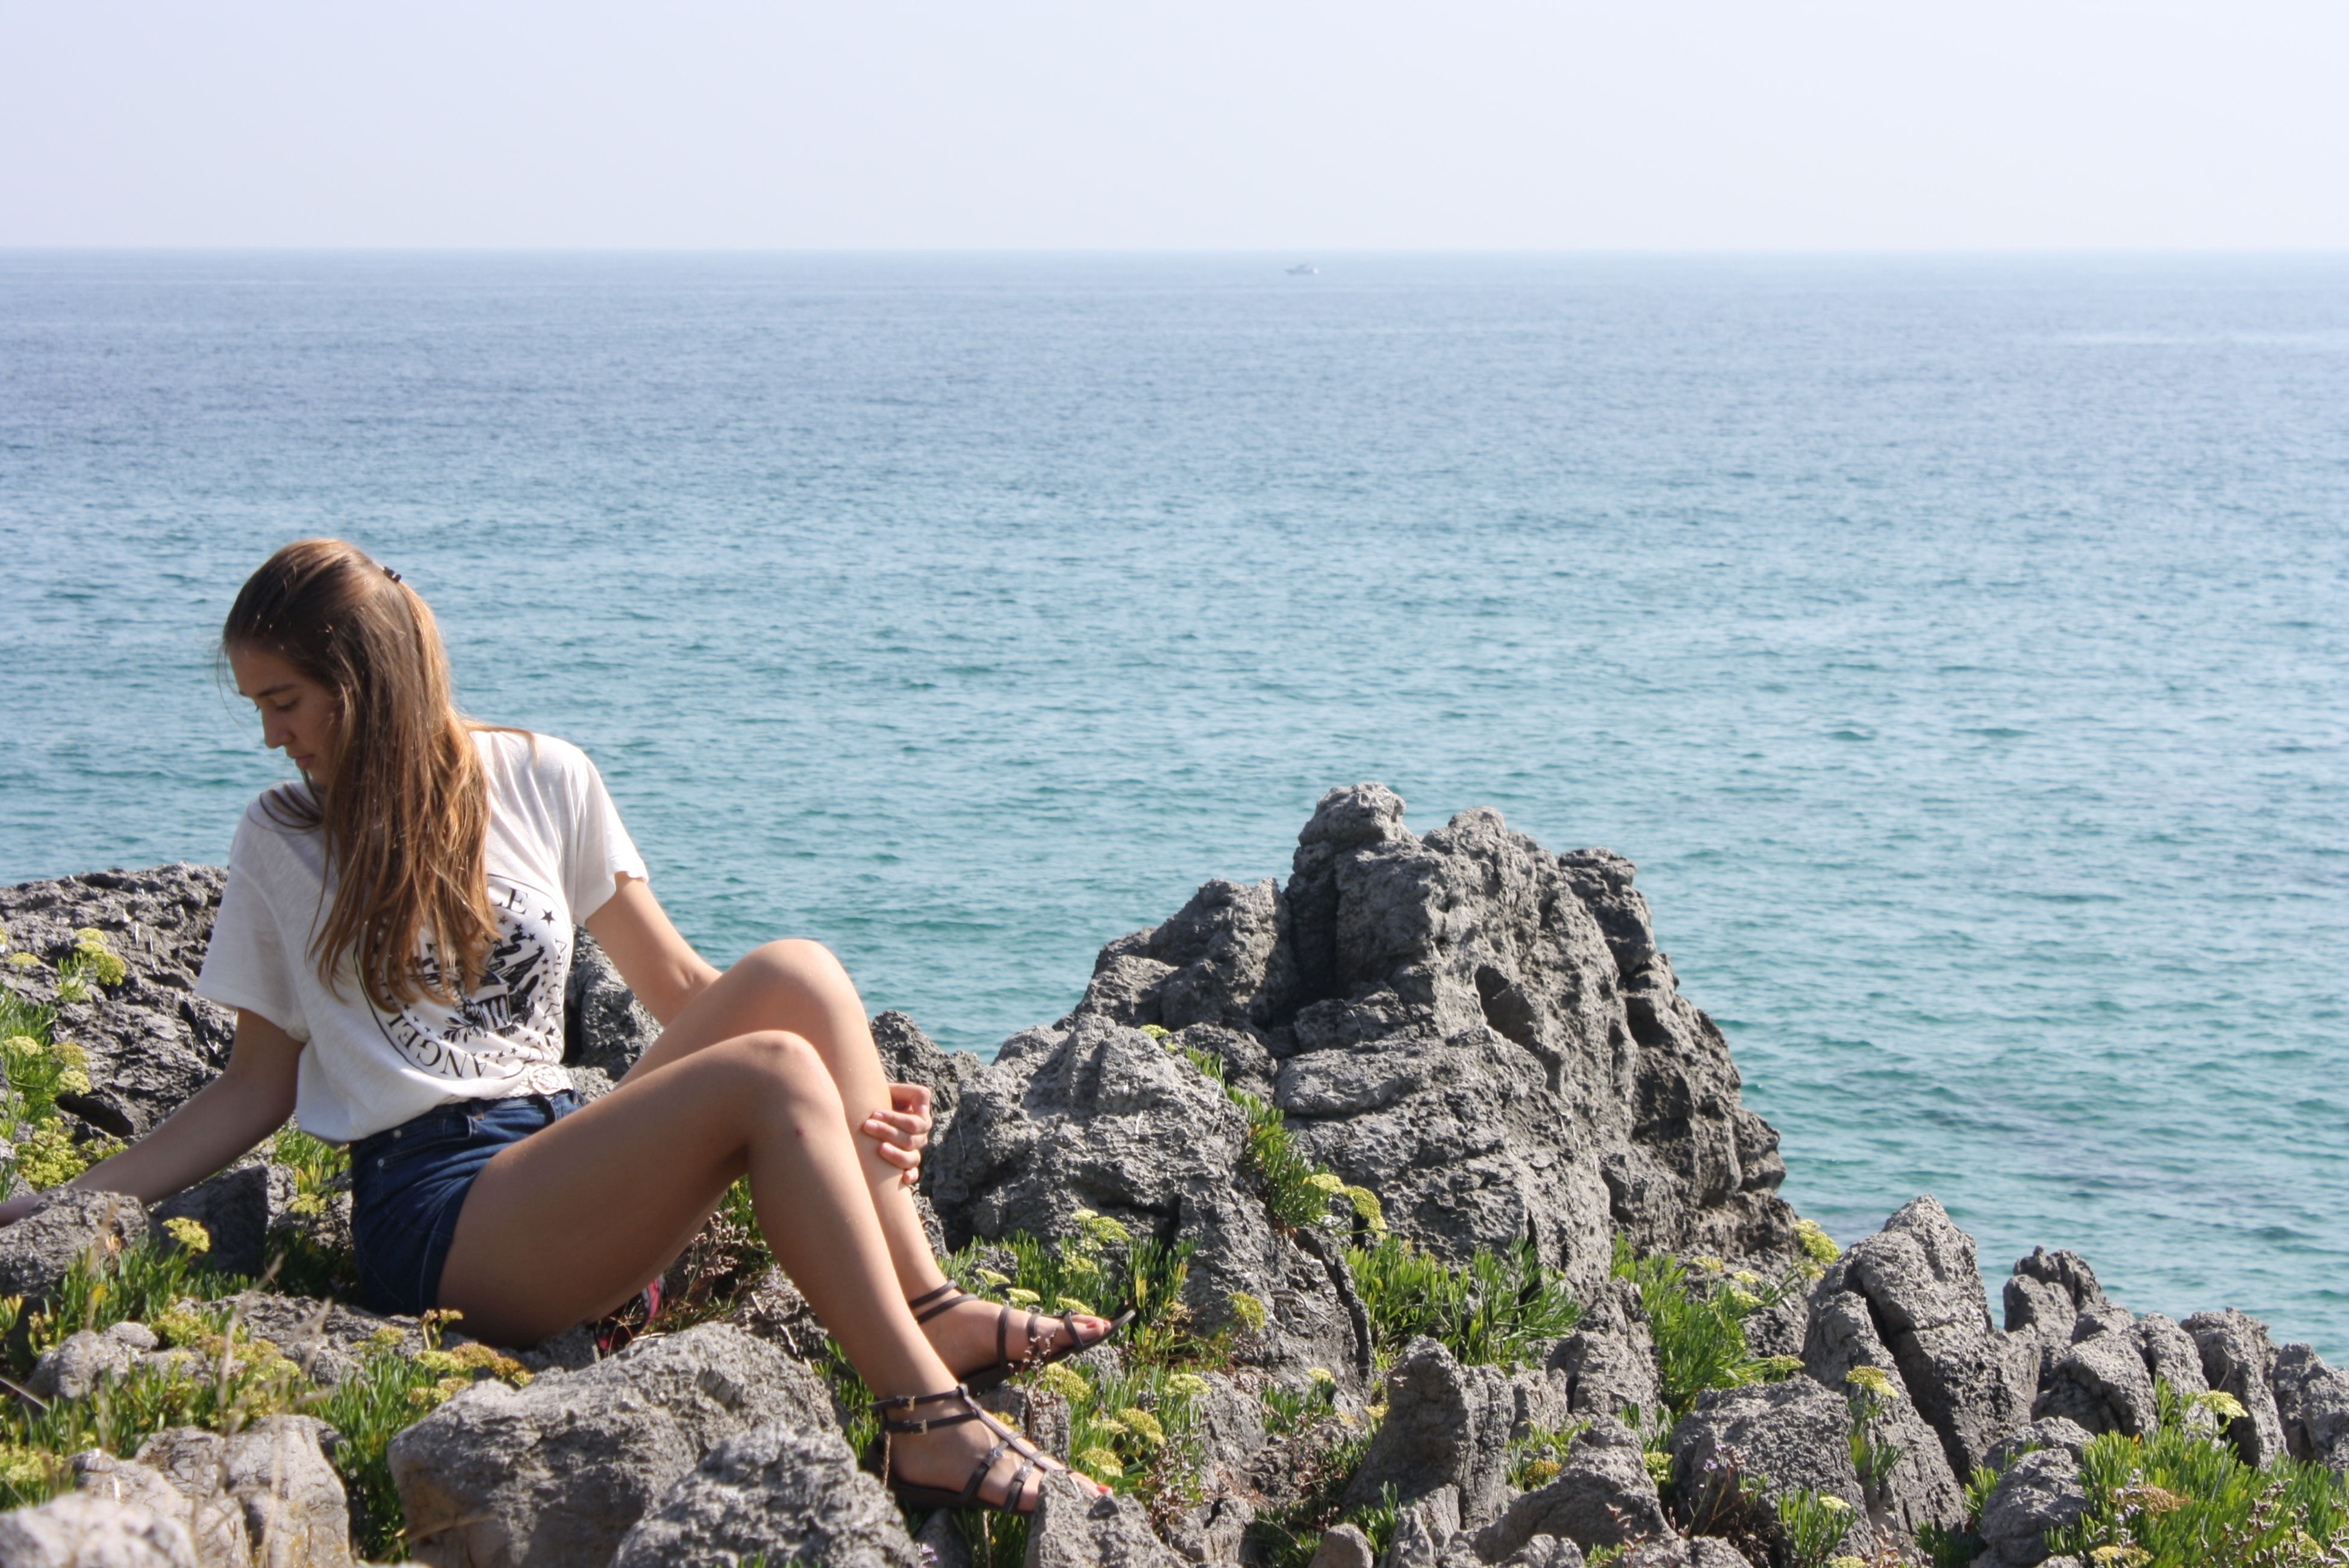 sea, horizon over water, lifestyles, leisure activity, water, person, beauty in nature, tranquil scene, scenics, tranquility, sitting, rear view, young women, young adult, nature, vacations, relaxation, rock - object